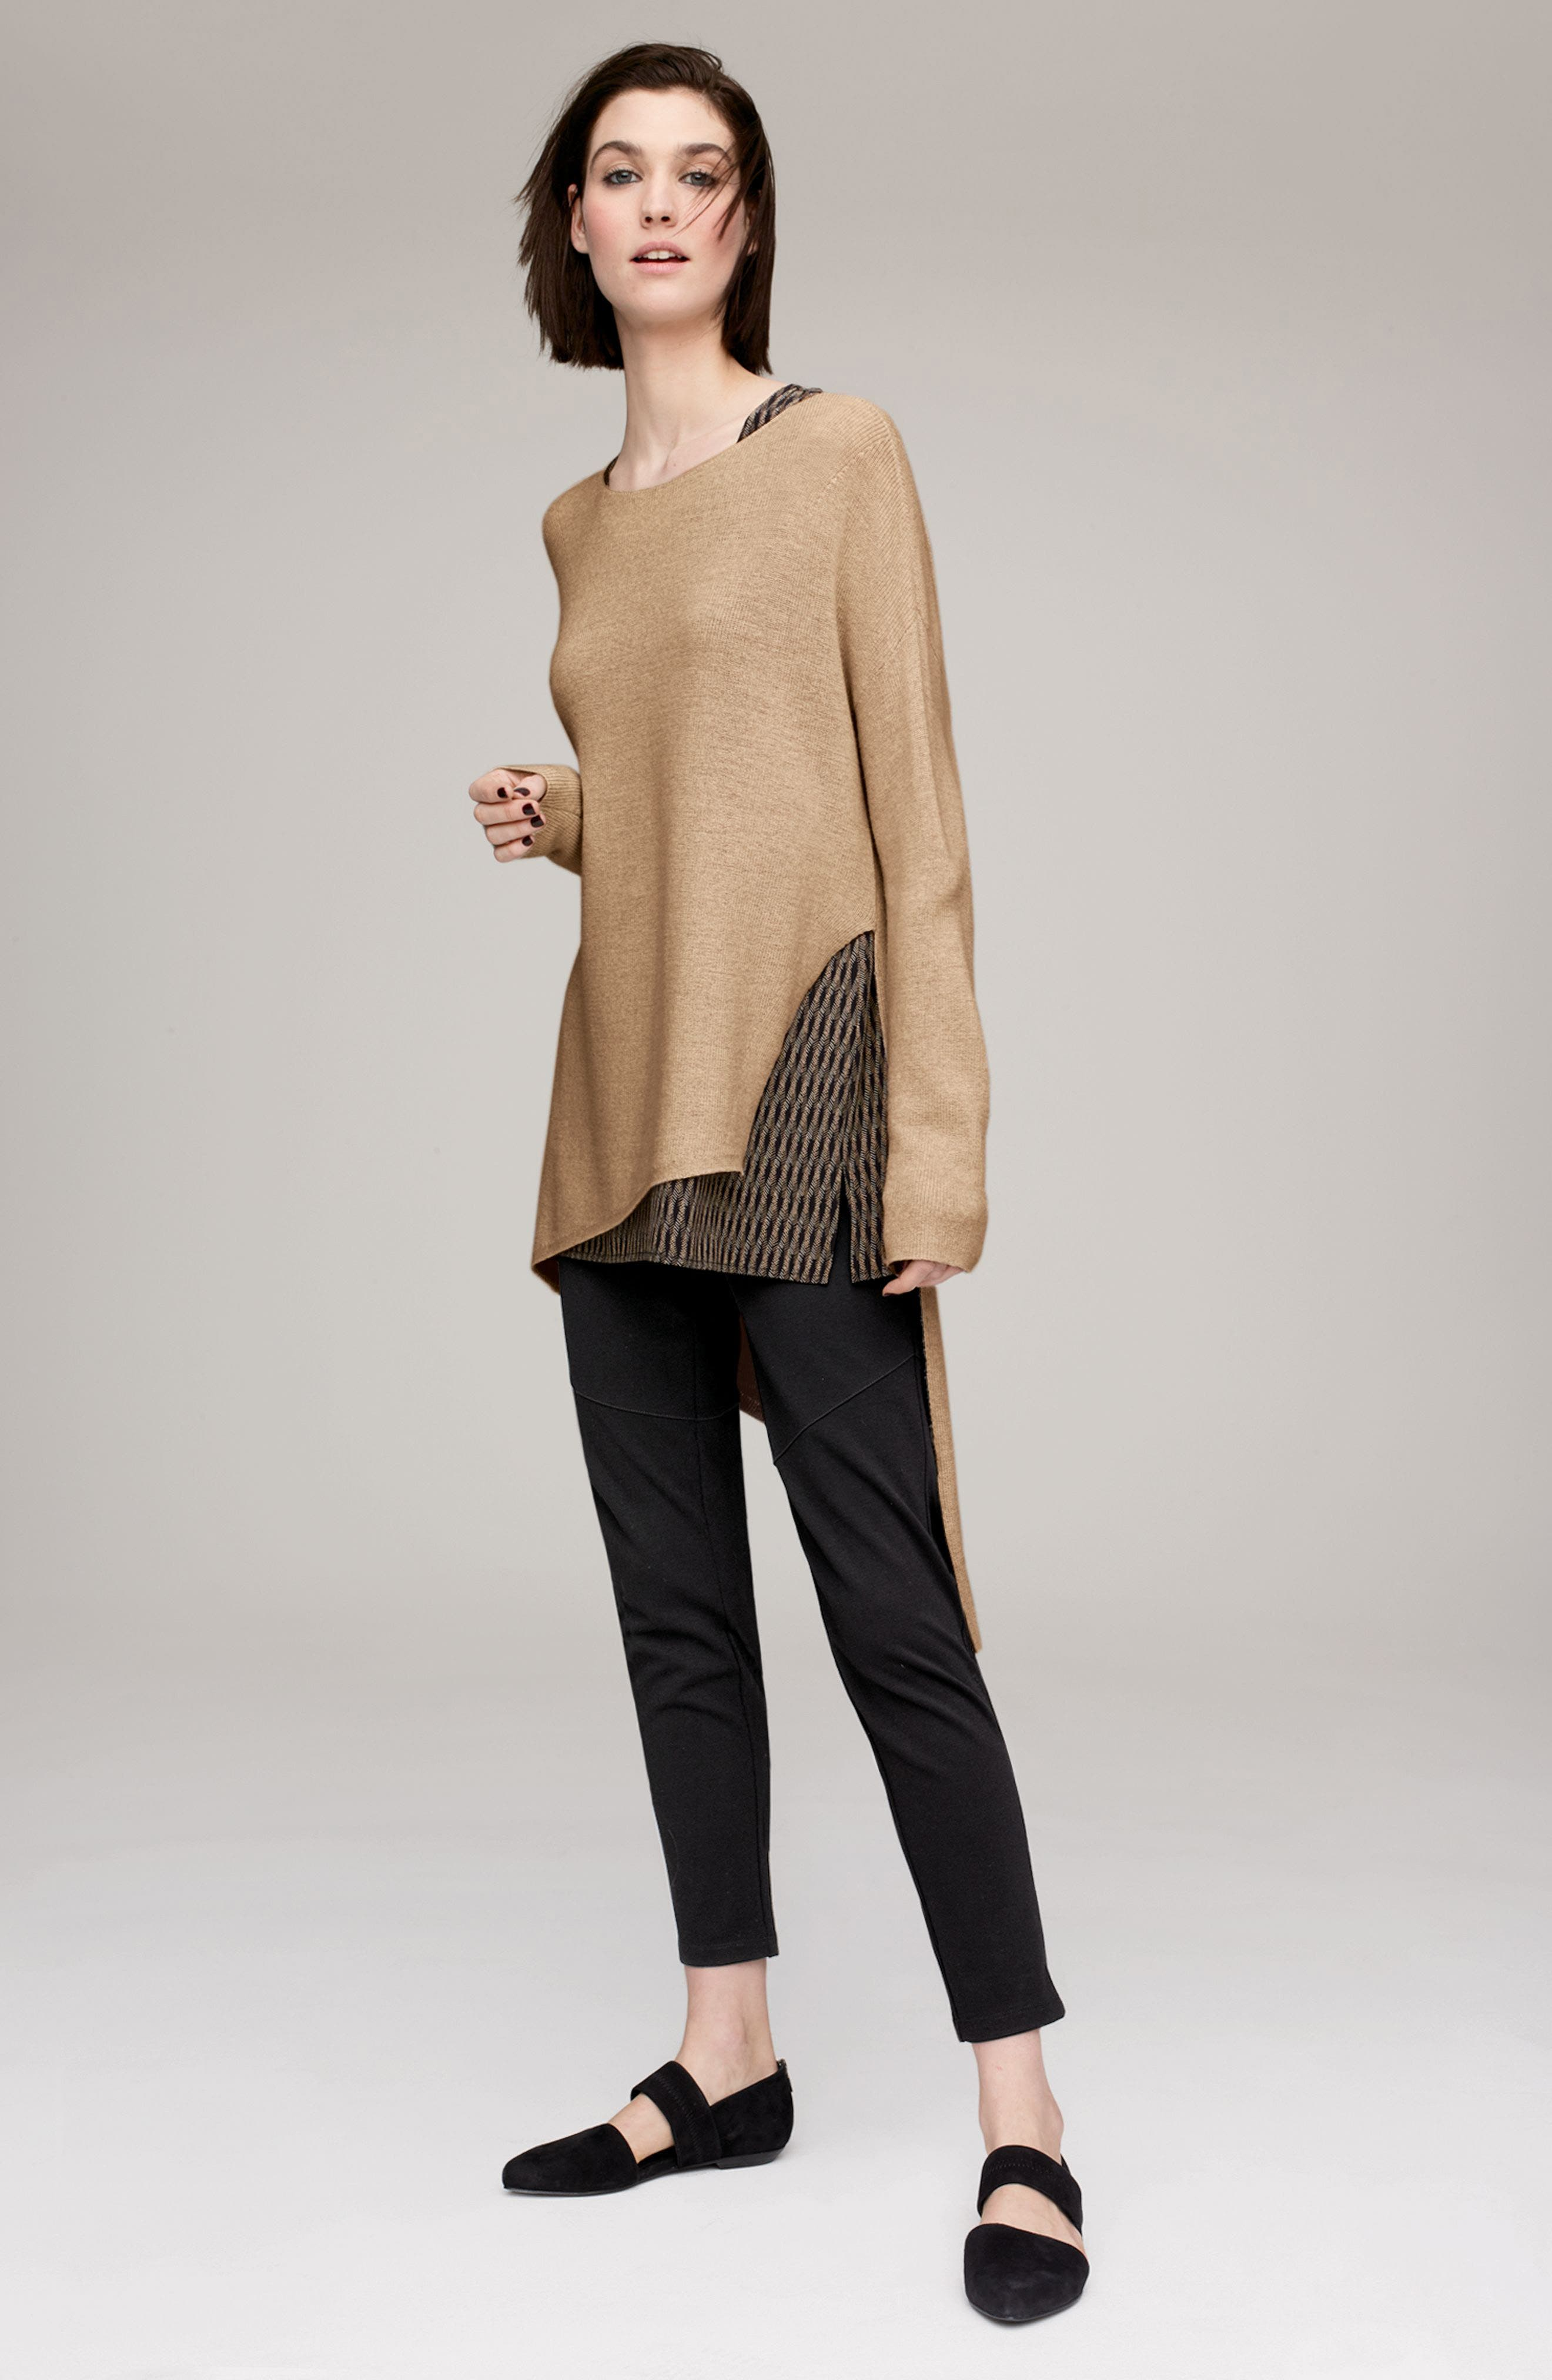 Eileen Fisher Pullover & Moto Pants Outfit with Accessories